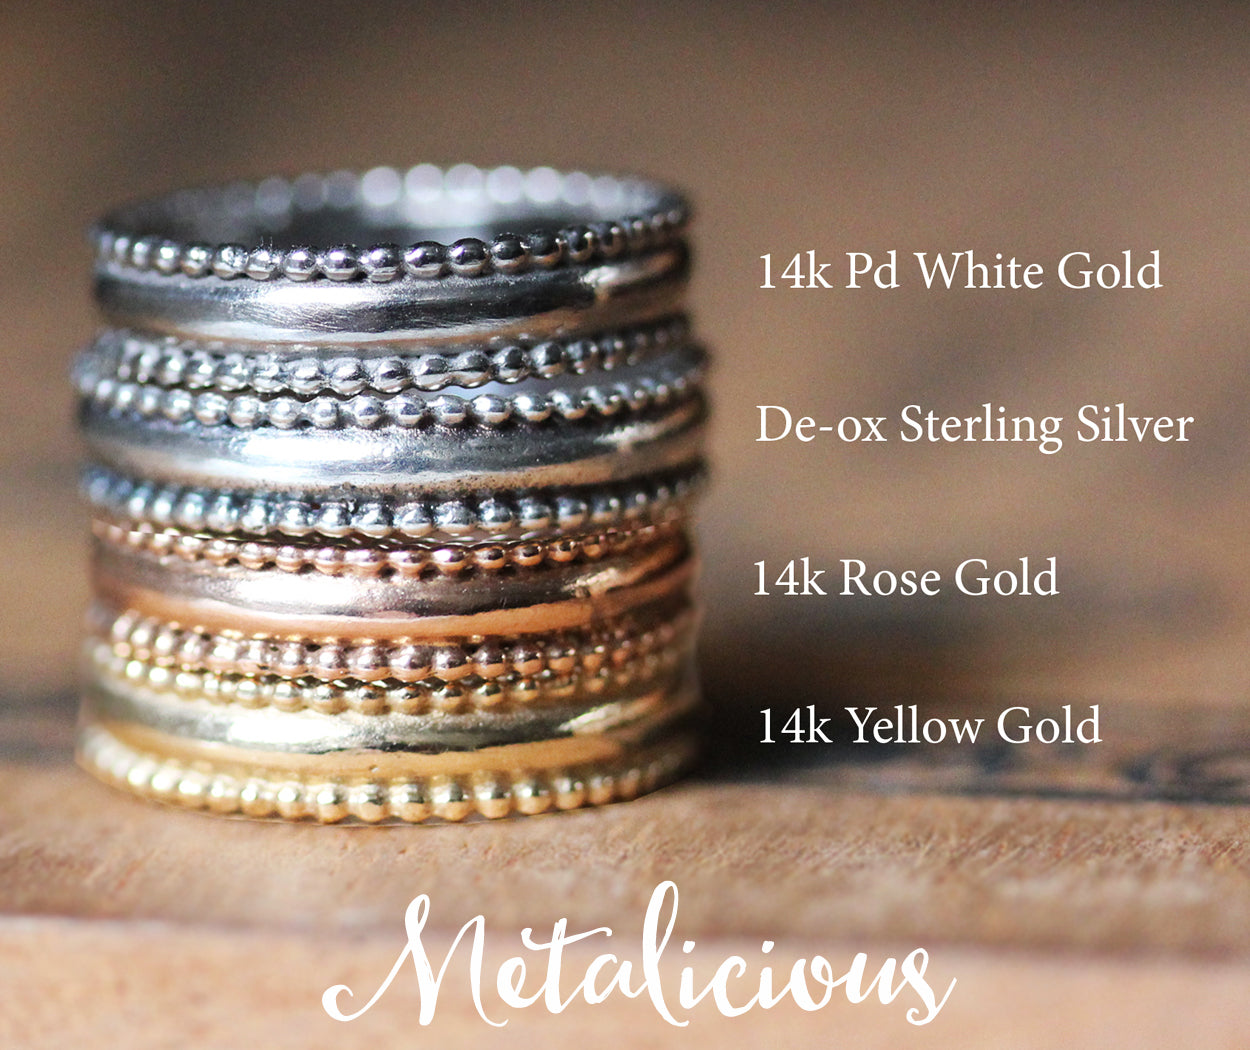 lace bands all gold stack with descriptions and logo